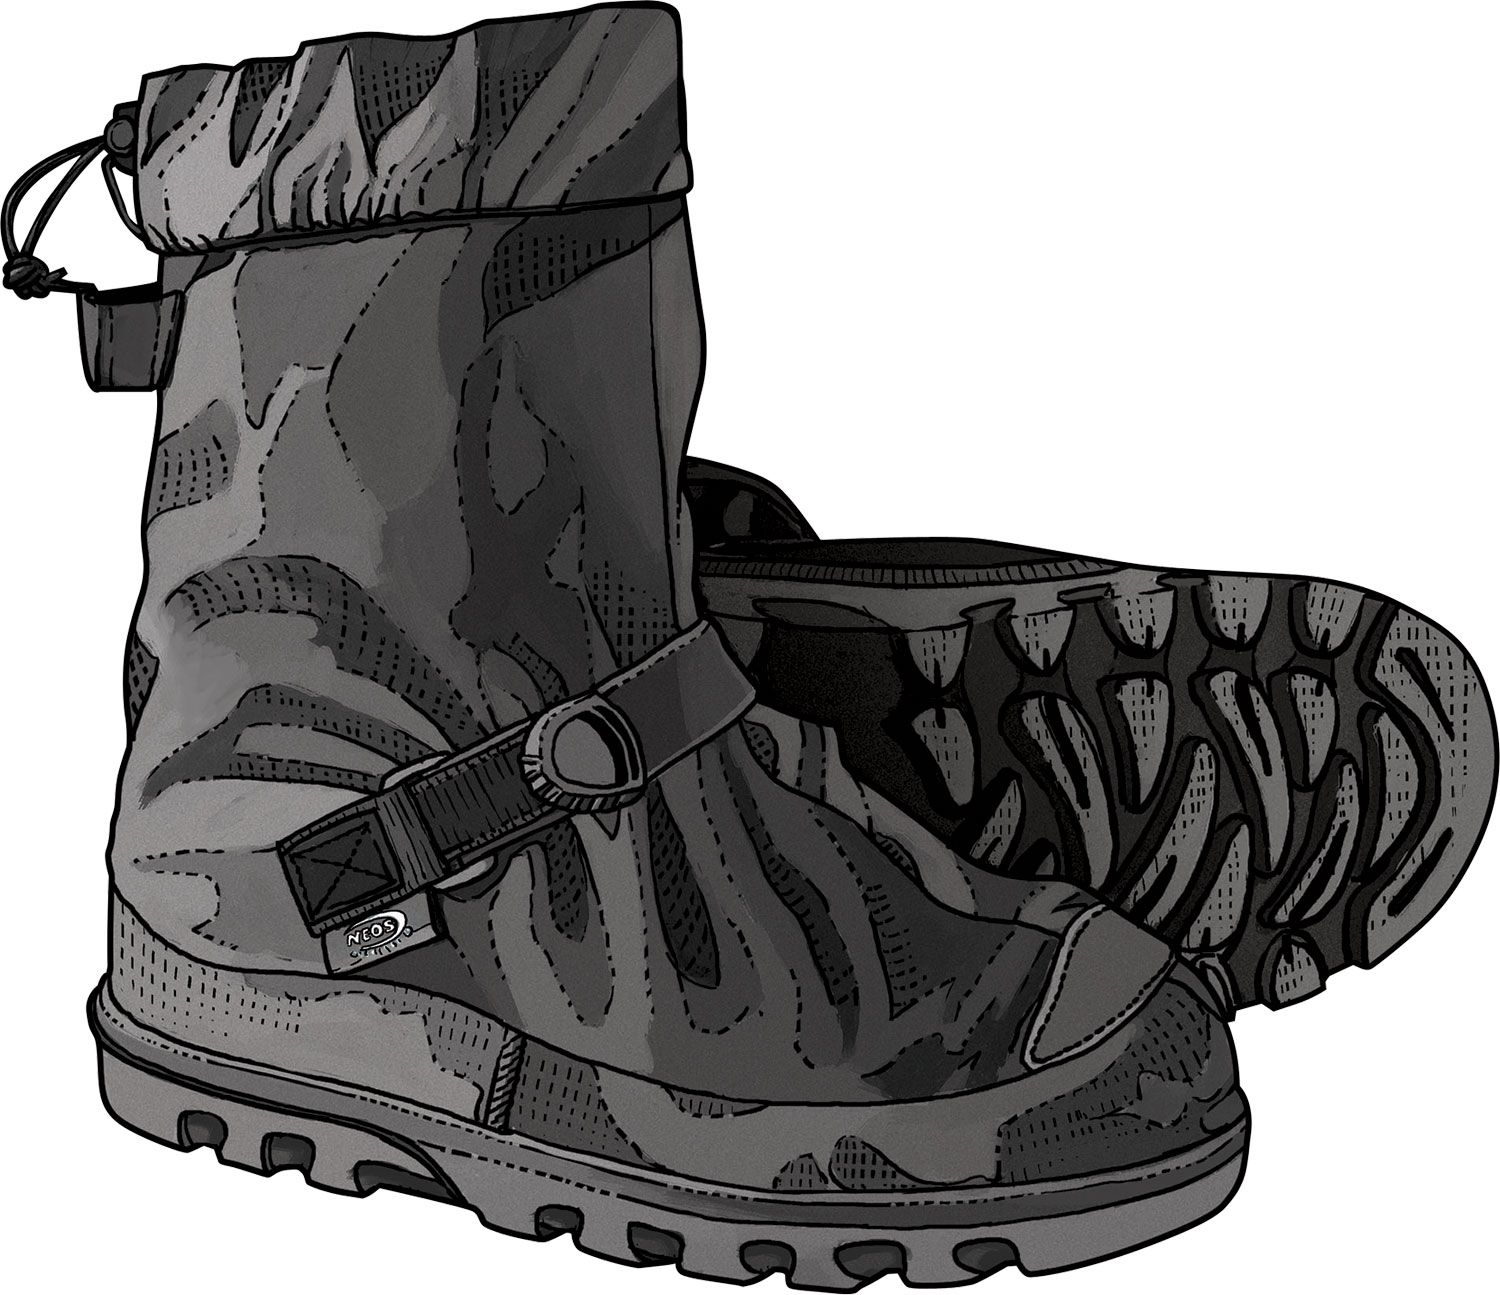 55e79095 Neos OverShoes from Duluth Trading Company pull on easily over work boots,  wingtips, you name it, for protection and sure-footed traction in winter.